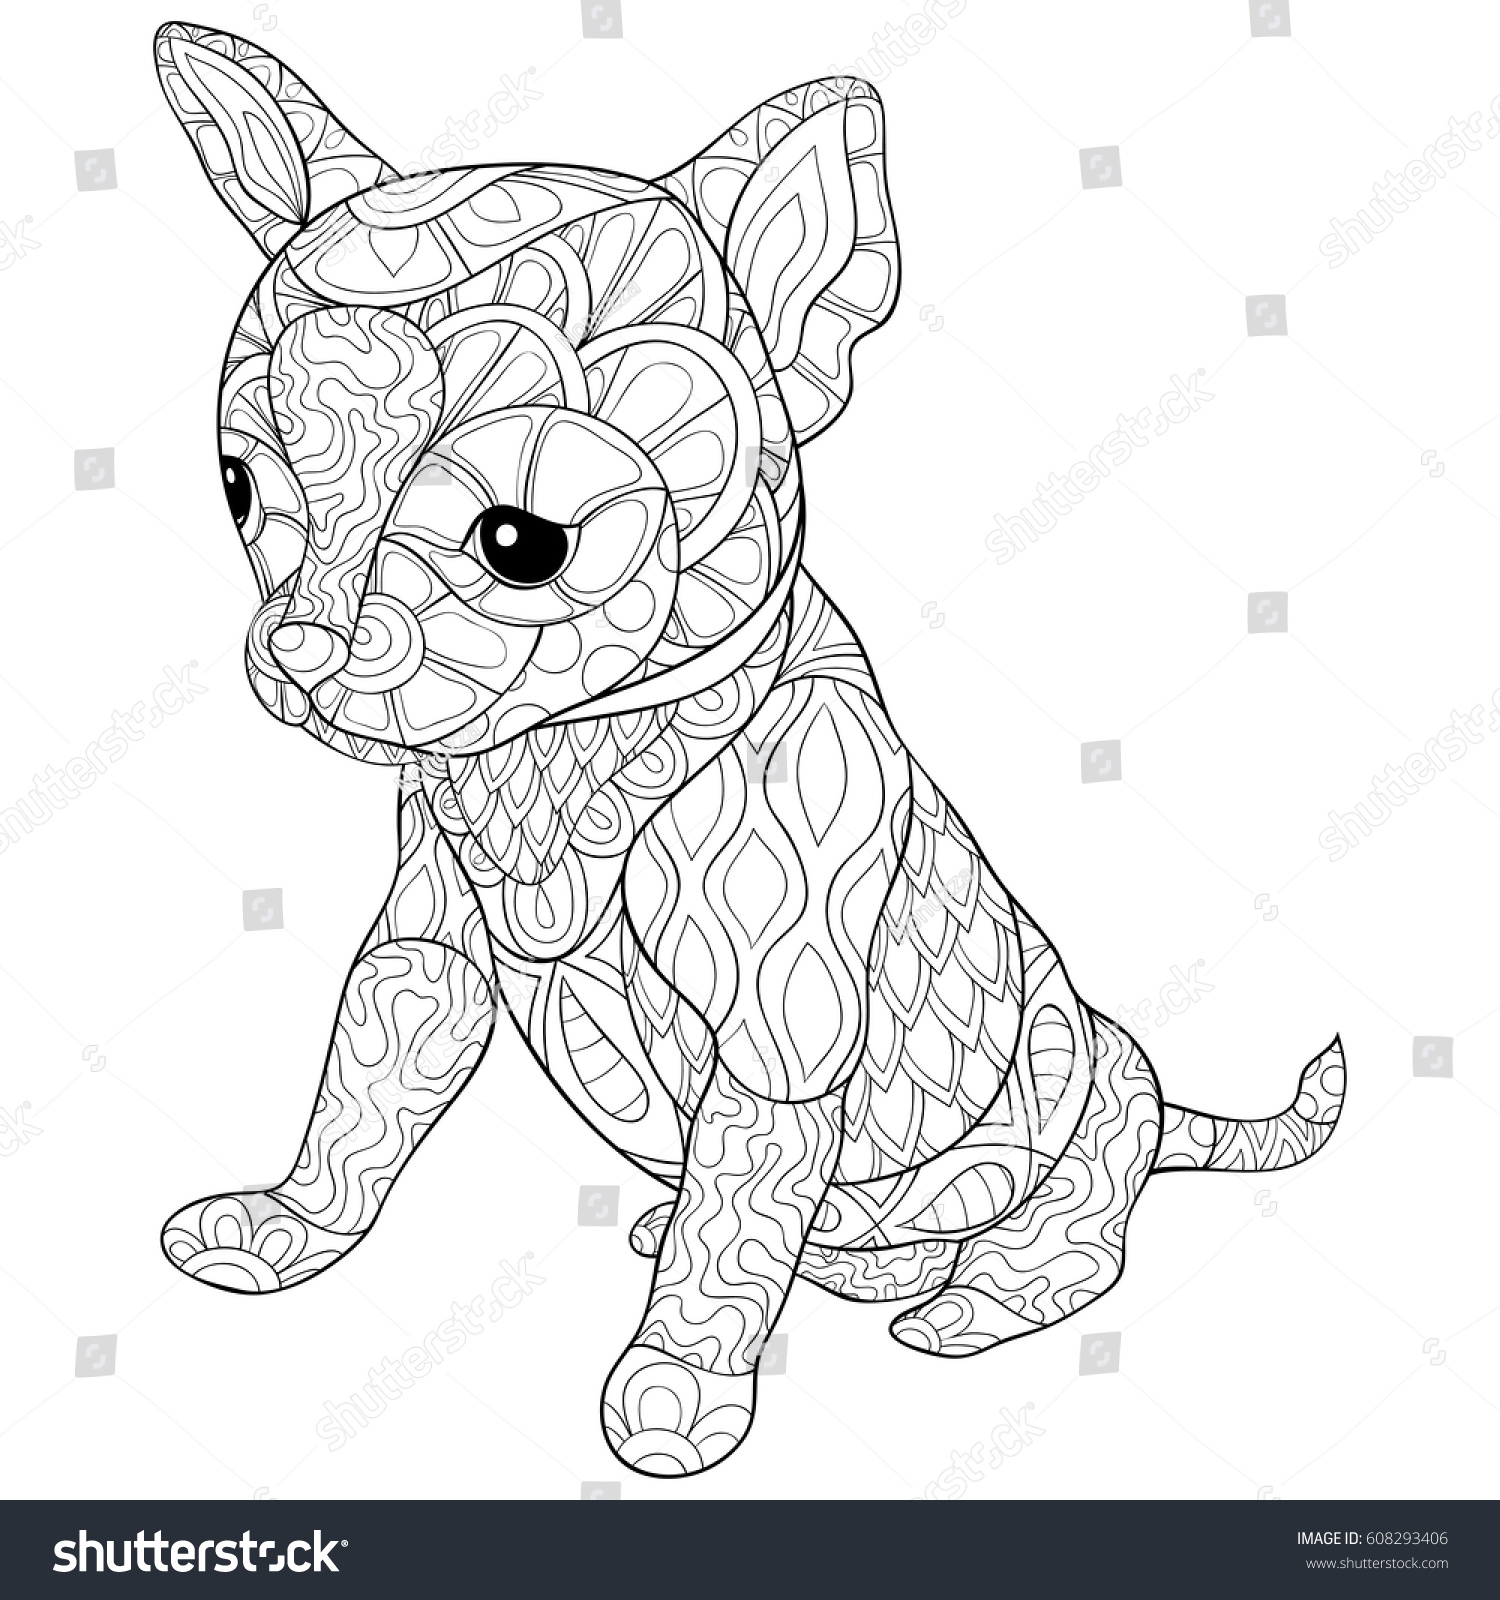 coloring pagebook dog zen art stock vector 608293406